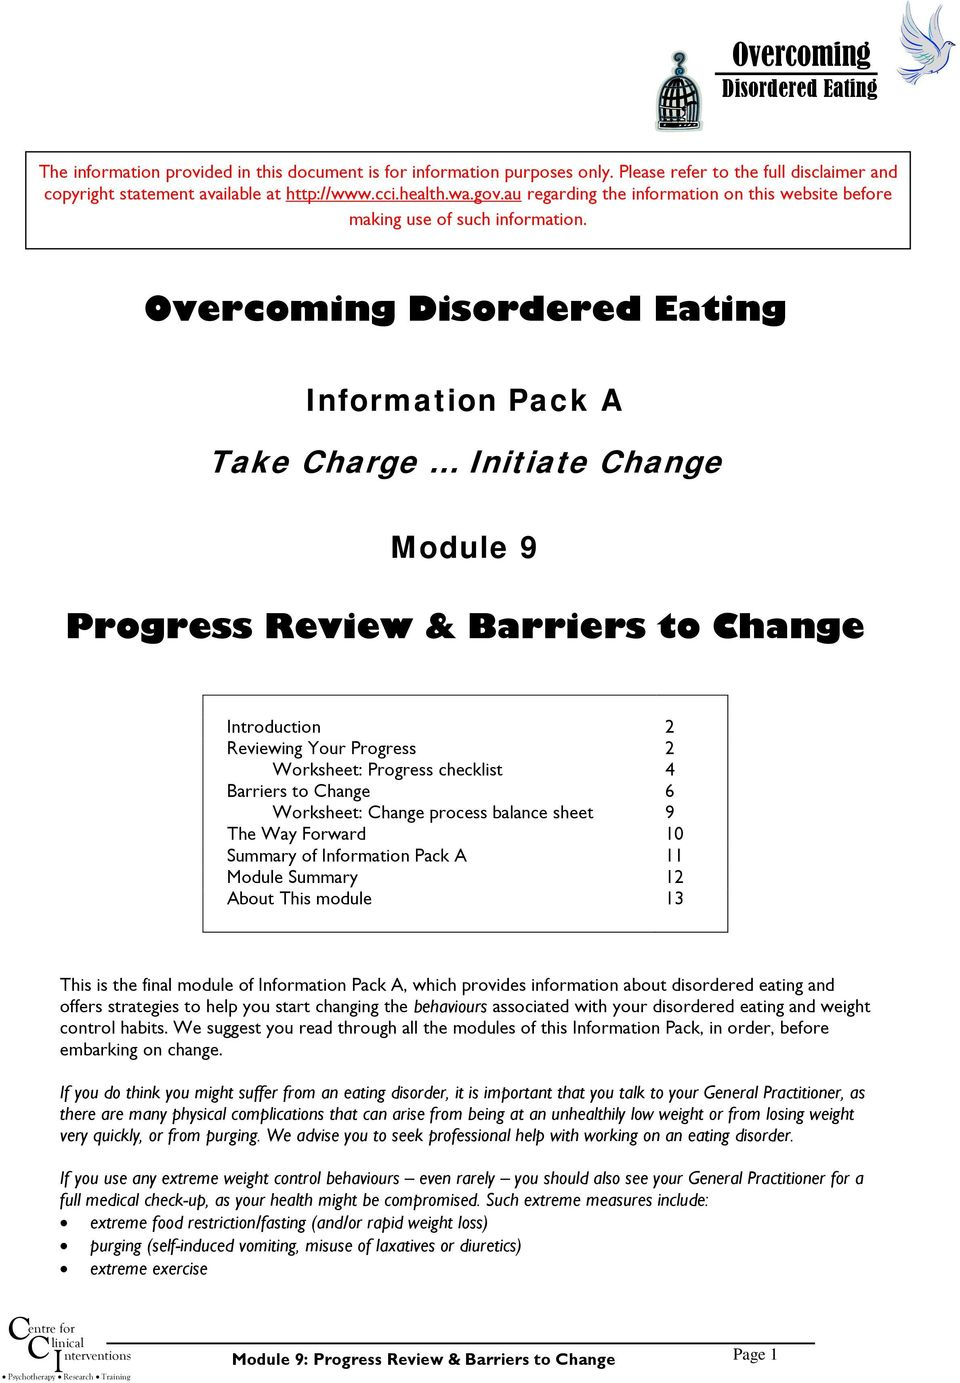 Overcoming nformation Pack A Take Charge nitiate Change Module 9 Progress Review & Barriers to Change ntroduction 2 Reviewing Your Progress 2 Worksheet: Progress checklist 4 Barriers to Change 6